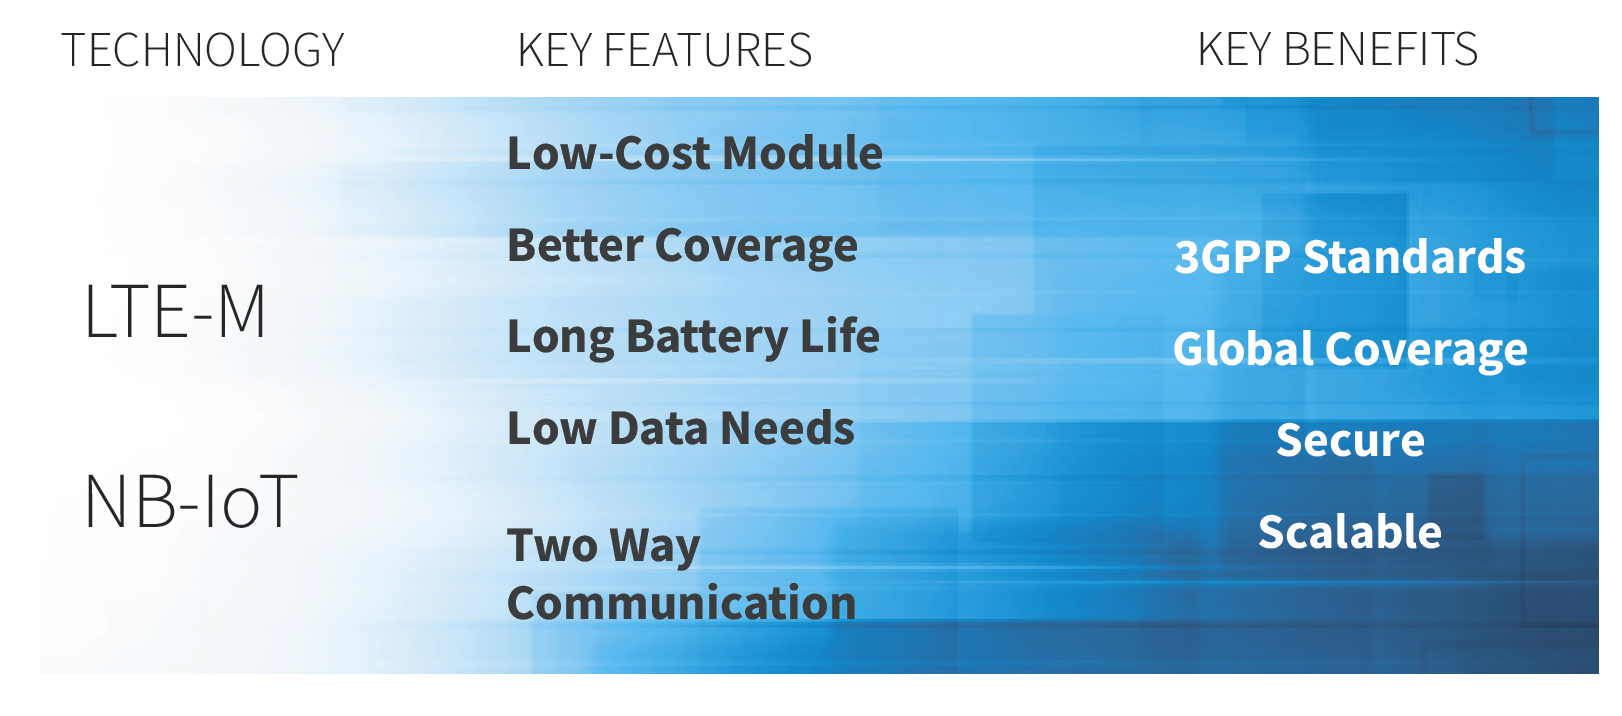 LTE-M & NB-IoT: Features and Benefits. Mobile IoT: 3GPP standard technology for LPWA